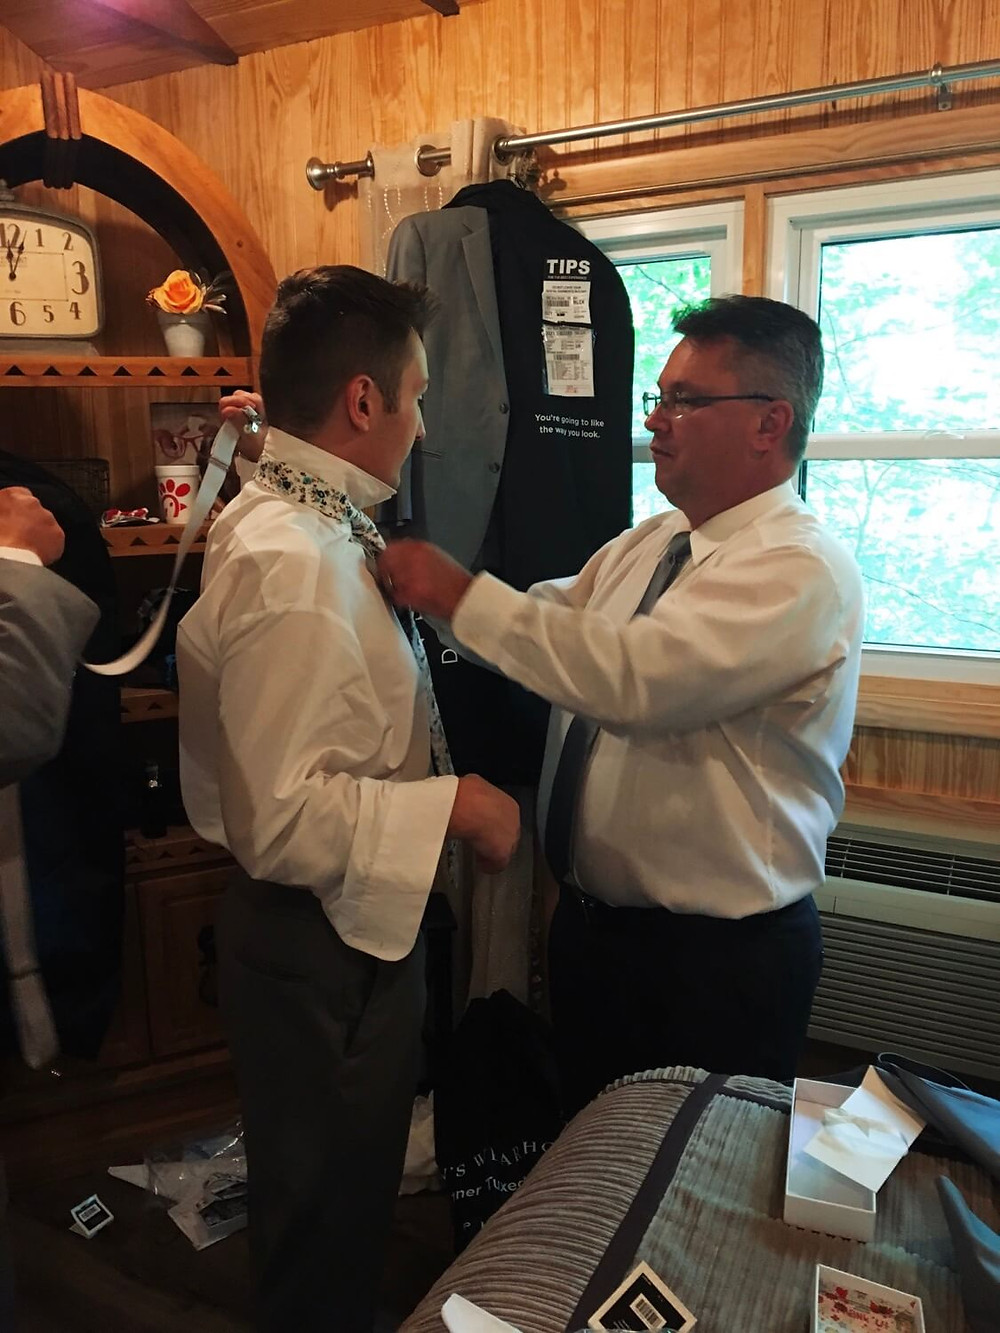 Father of the groom tying his son's tie before his wedding